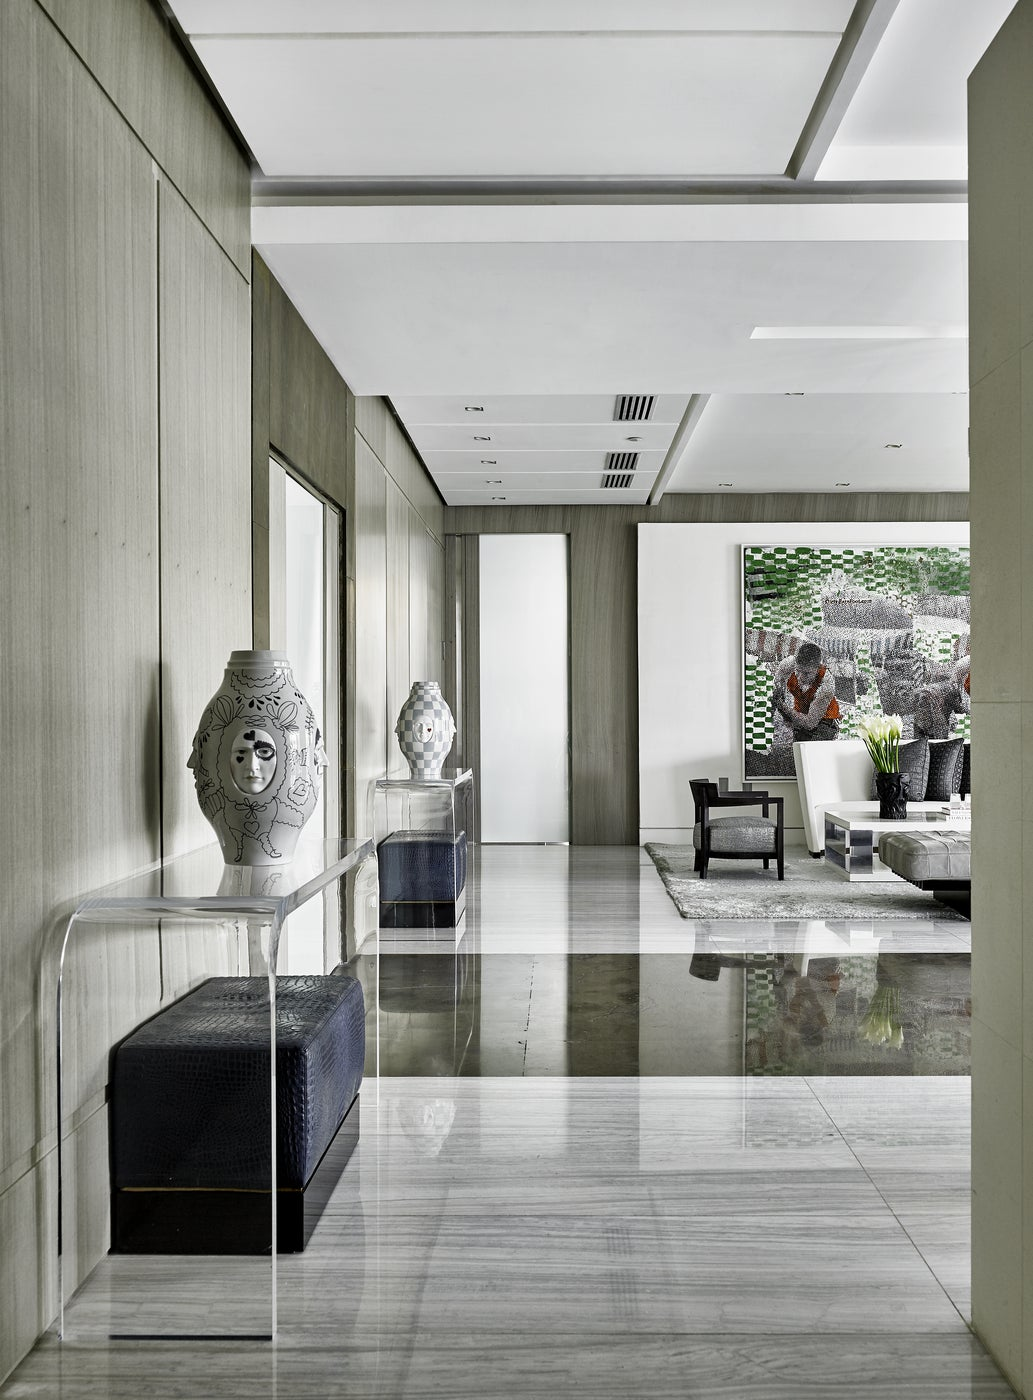 Art Collector's apartment Panama / Entry foyer